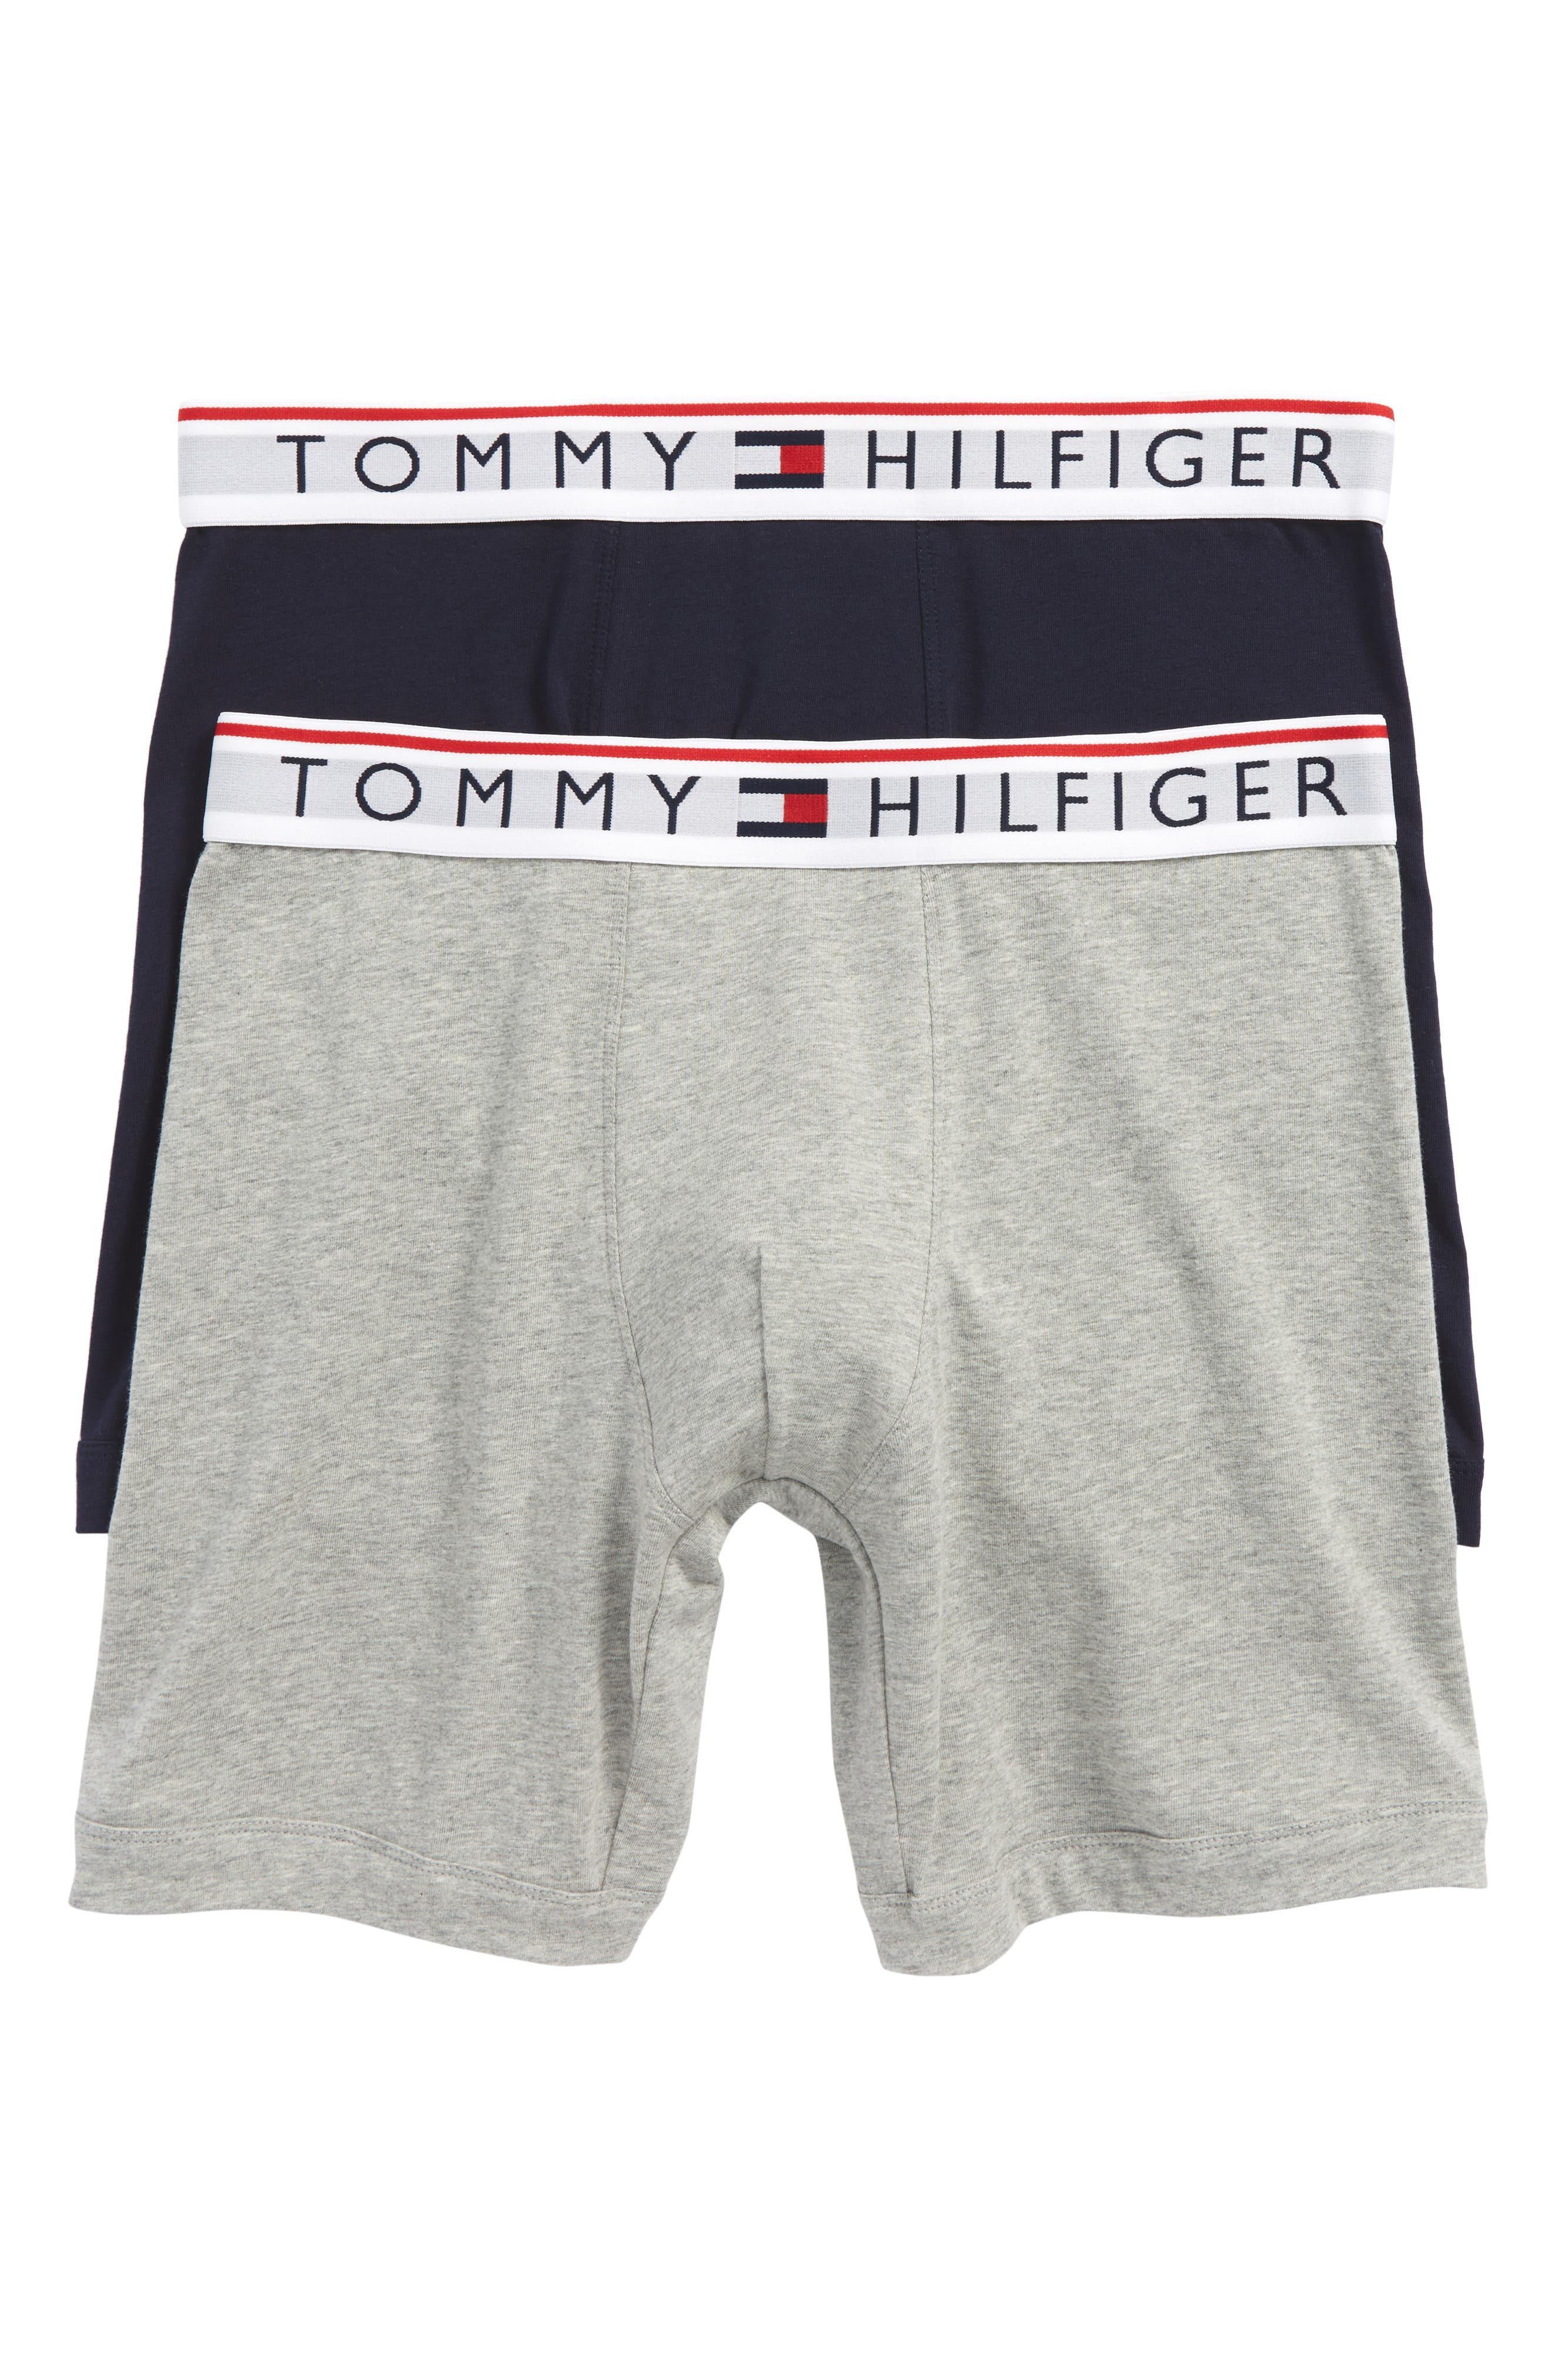 2-Pack Boxer Briefs,                         Main,                         color, Dark Navy